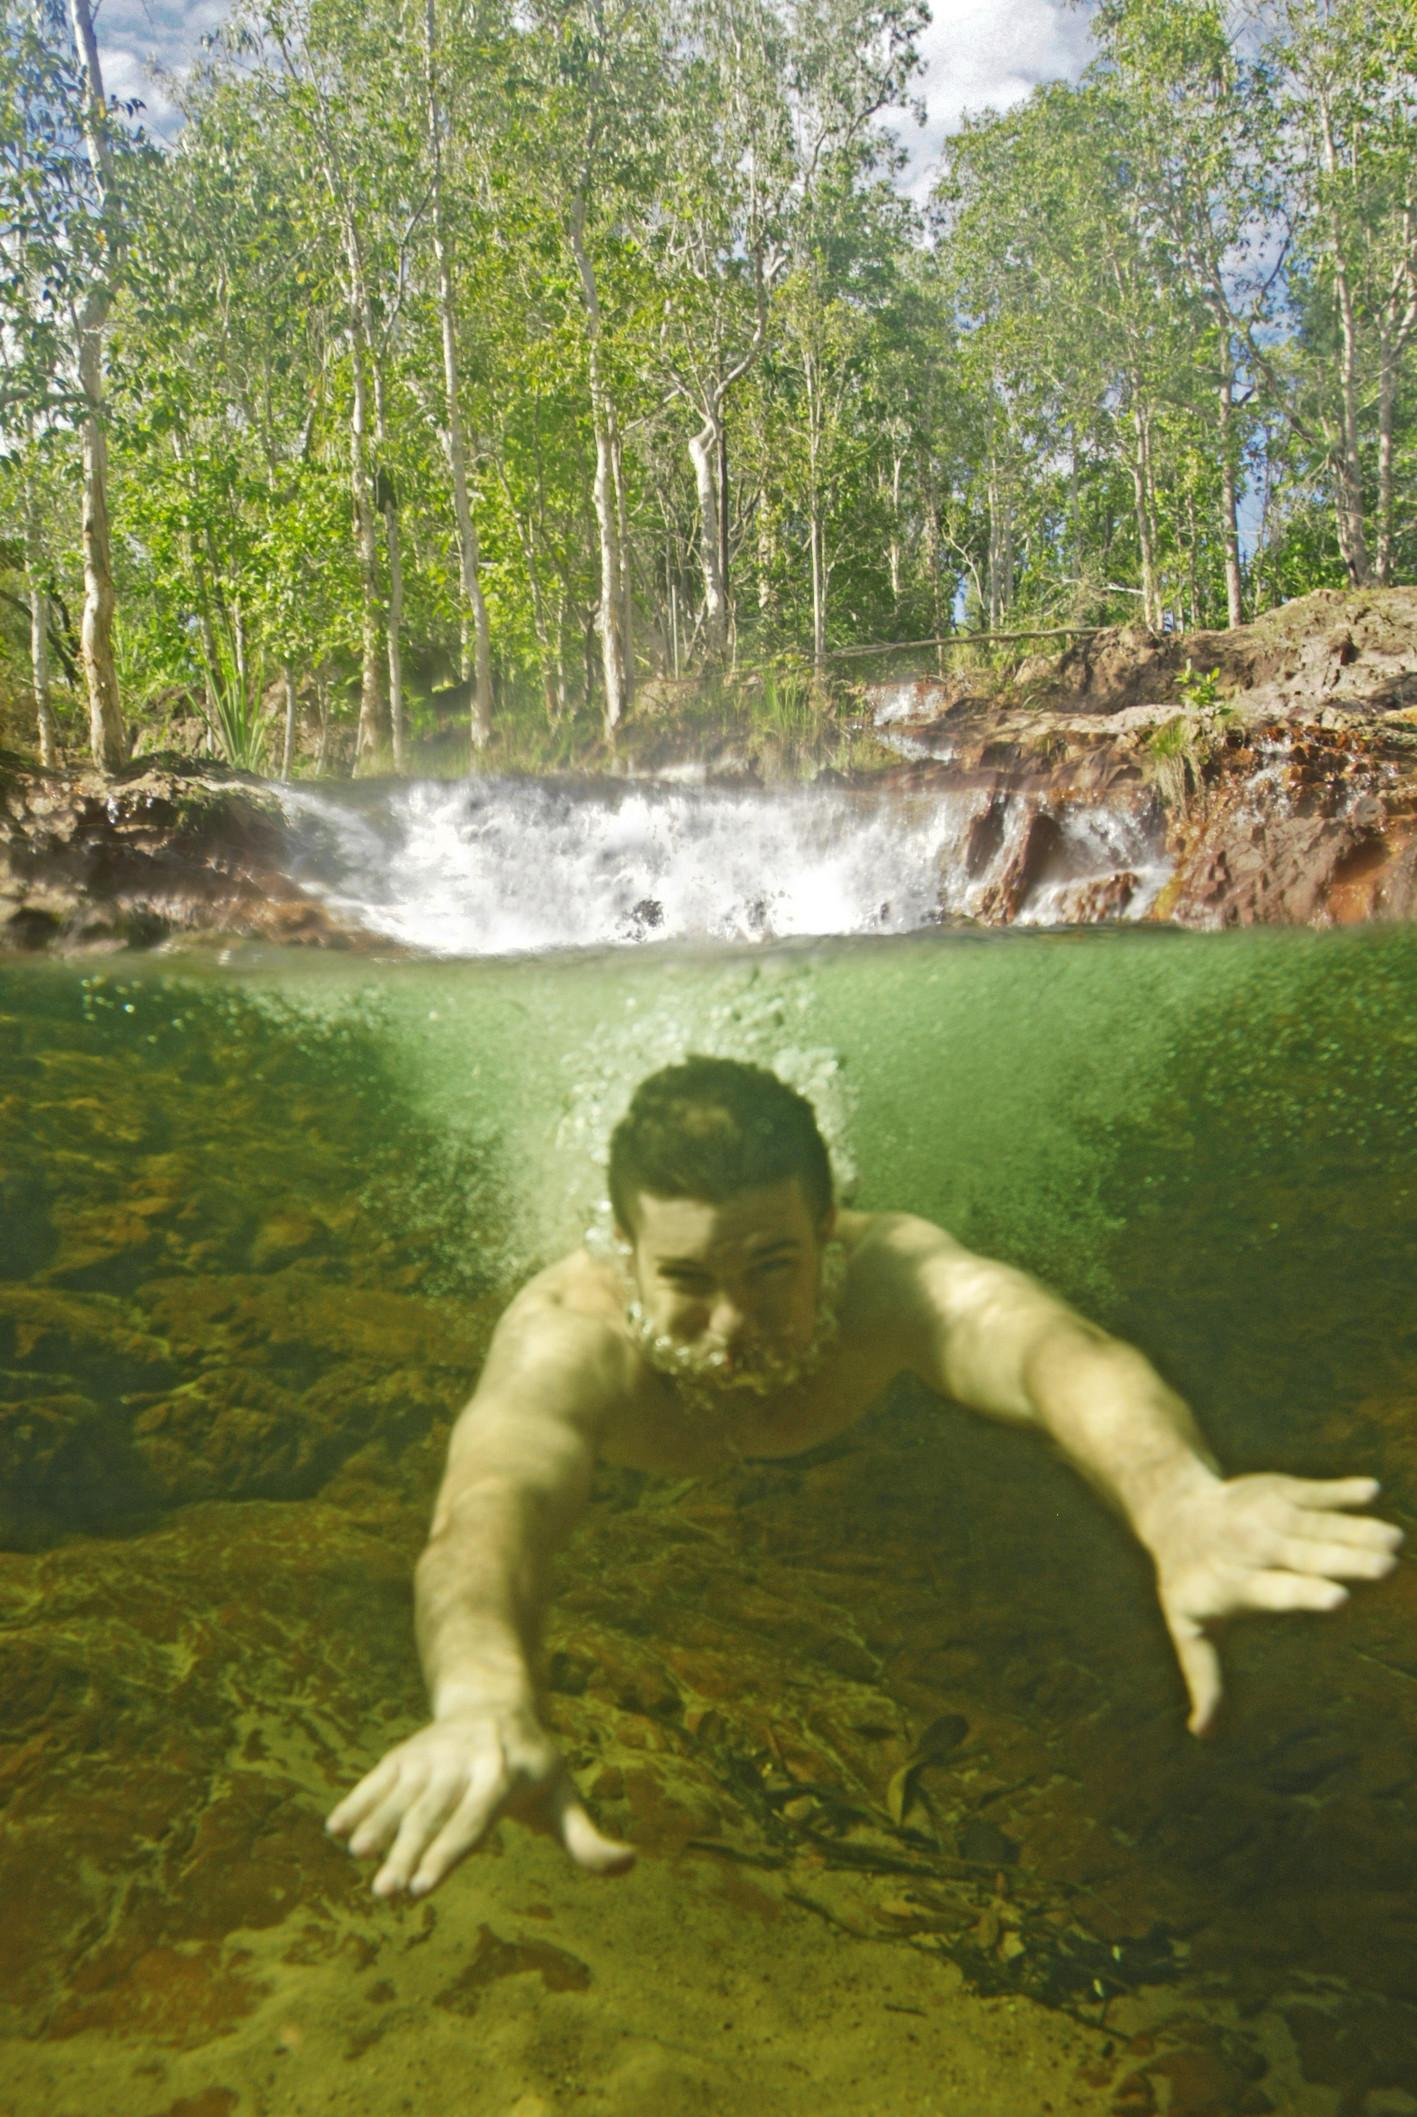 Explore the Top End at Your Own Pace with this 7 Day Self-Drive Package